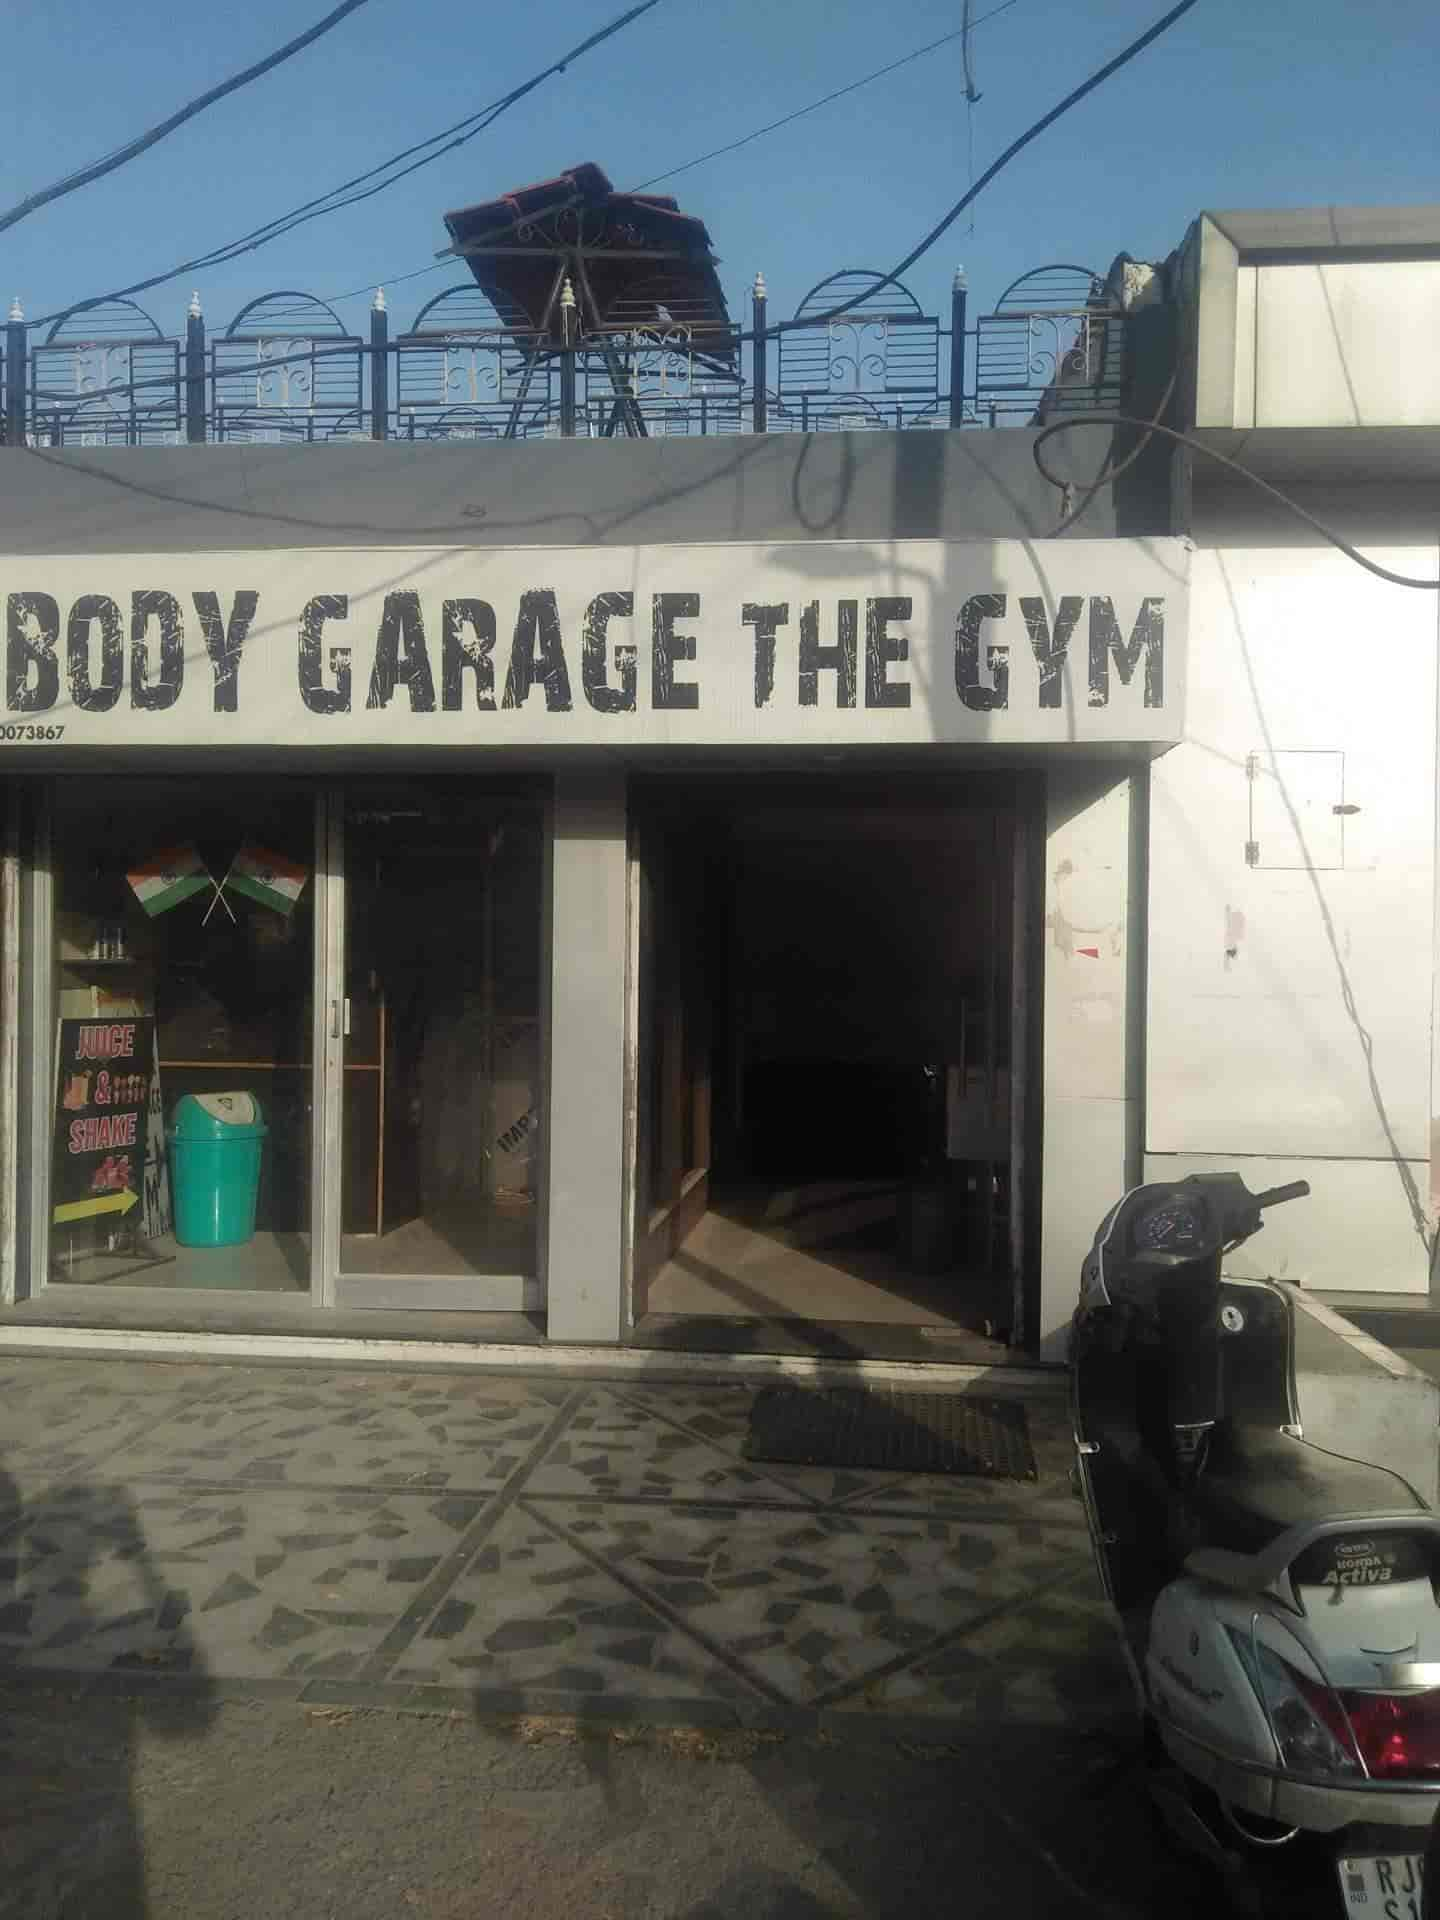 Garage Gym With Car Body Garage The Gym Photos Udaipur City Udaipur Rajasthan